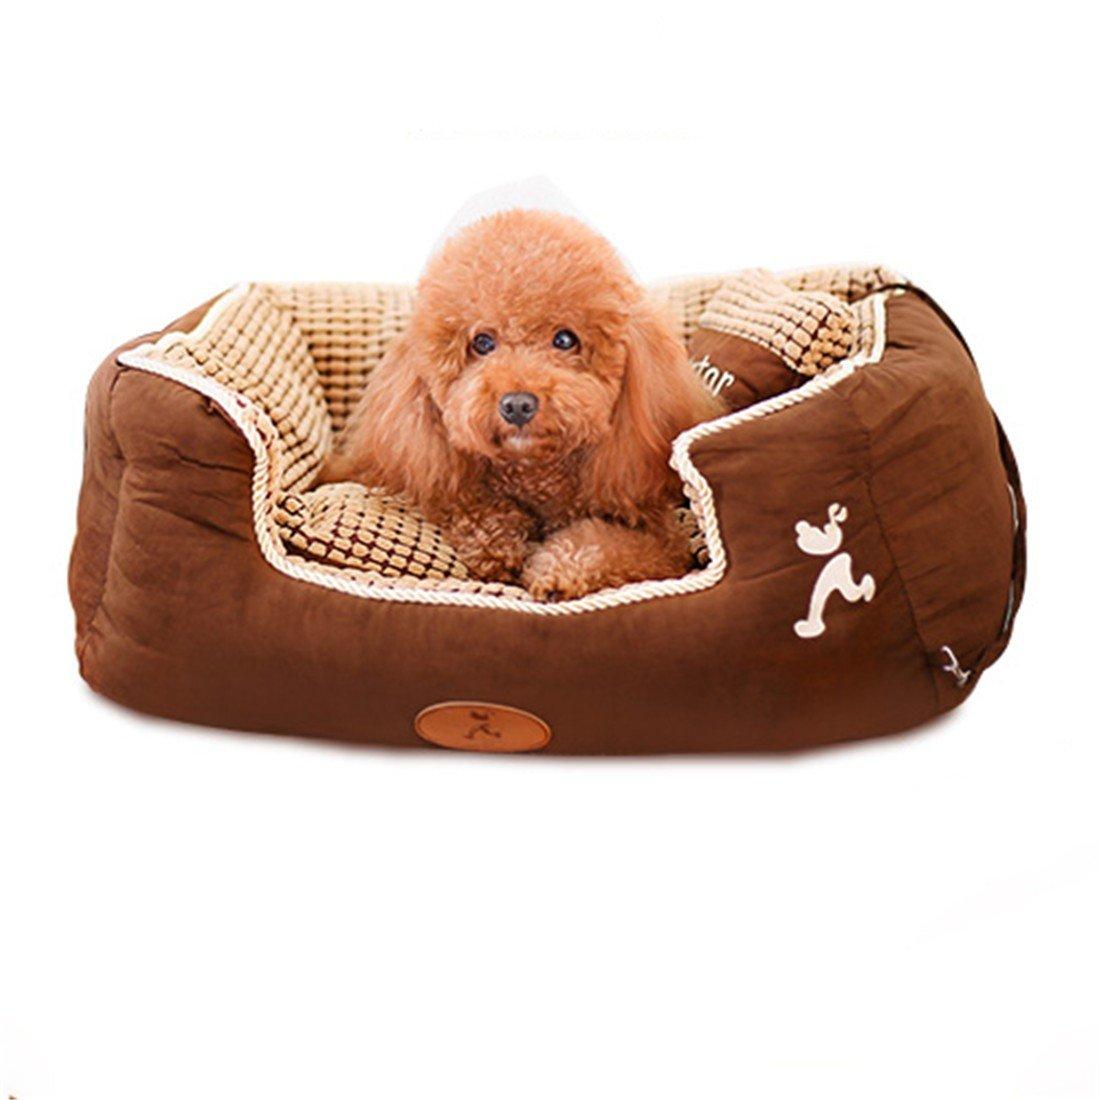 M 75x62x25CM STAZSX Dog House Washable Teddy Dog Bed Dog House Dog Summer Large Medium Small Dog Pet Supplies Four Seasons Common, Suede M  75x62x25CM